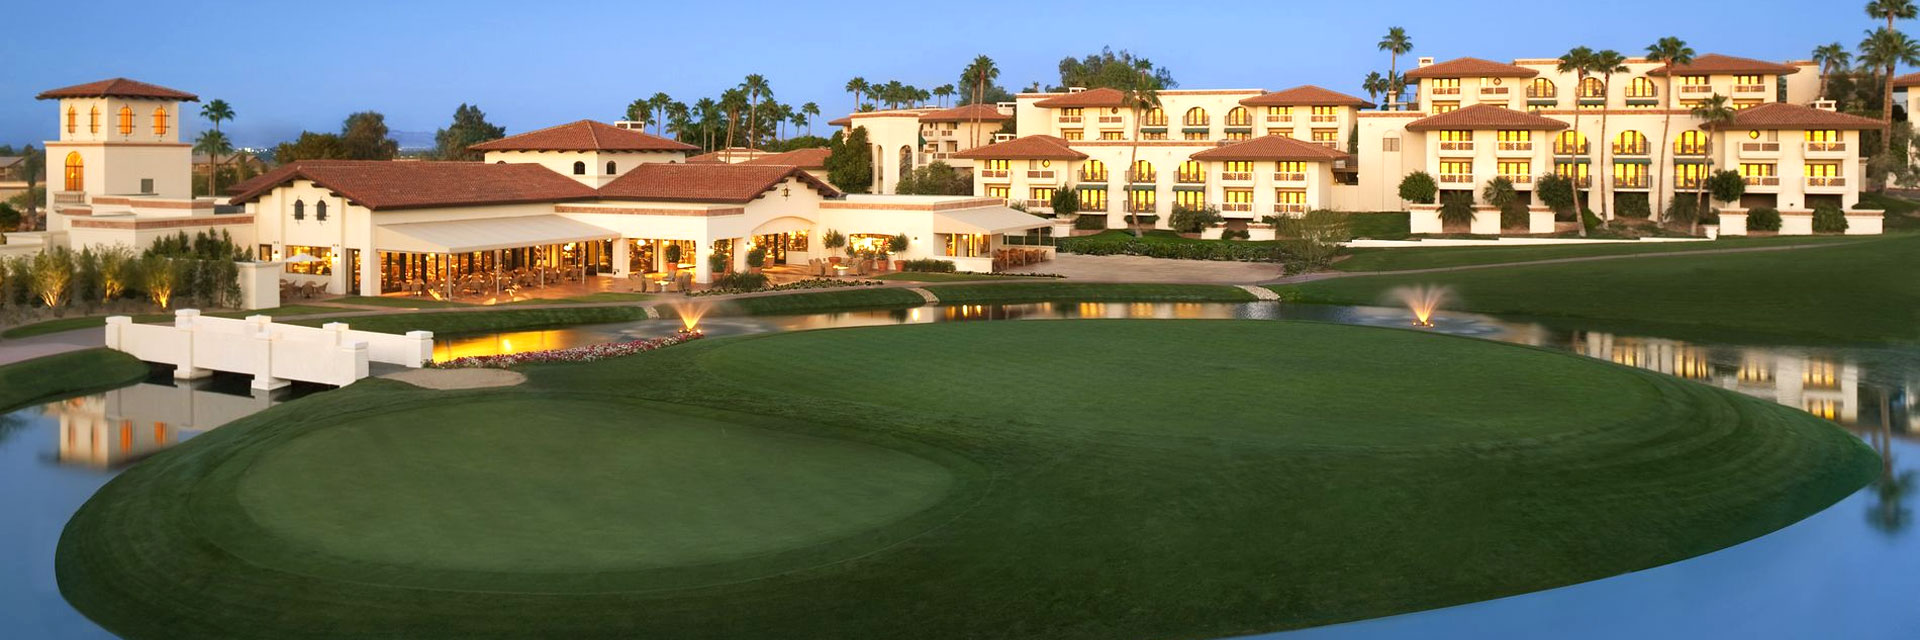 Phoenix / Scottsdale, AZ Golf Package: Arizona Grand - Suite + Dinosaur Mtn/Raven/Southern Dunes for $149 per person, per day!